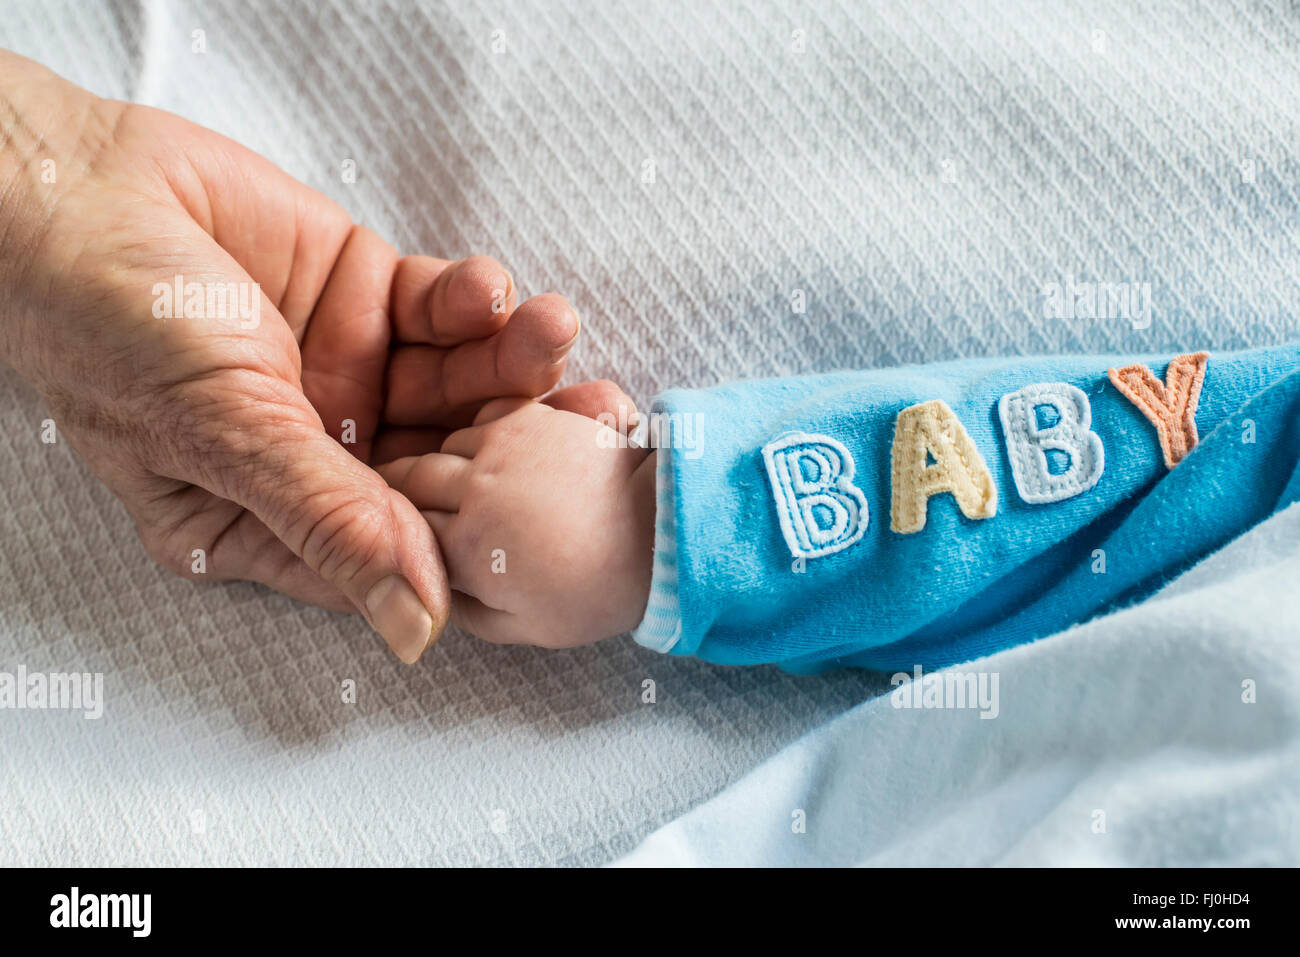 Senior woman's hand holding baby's hand - Stock Image